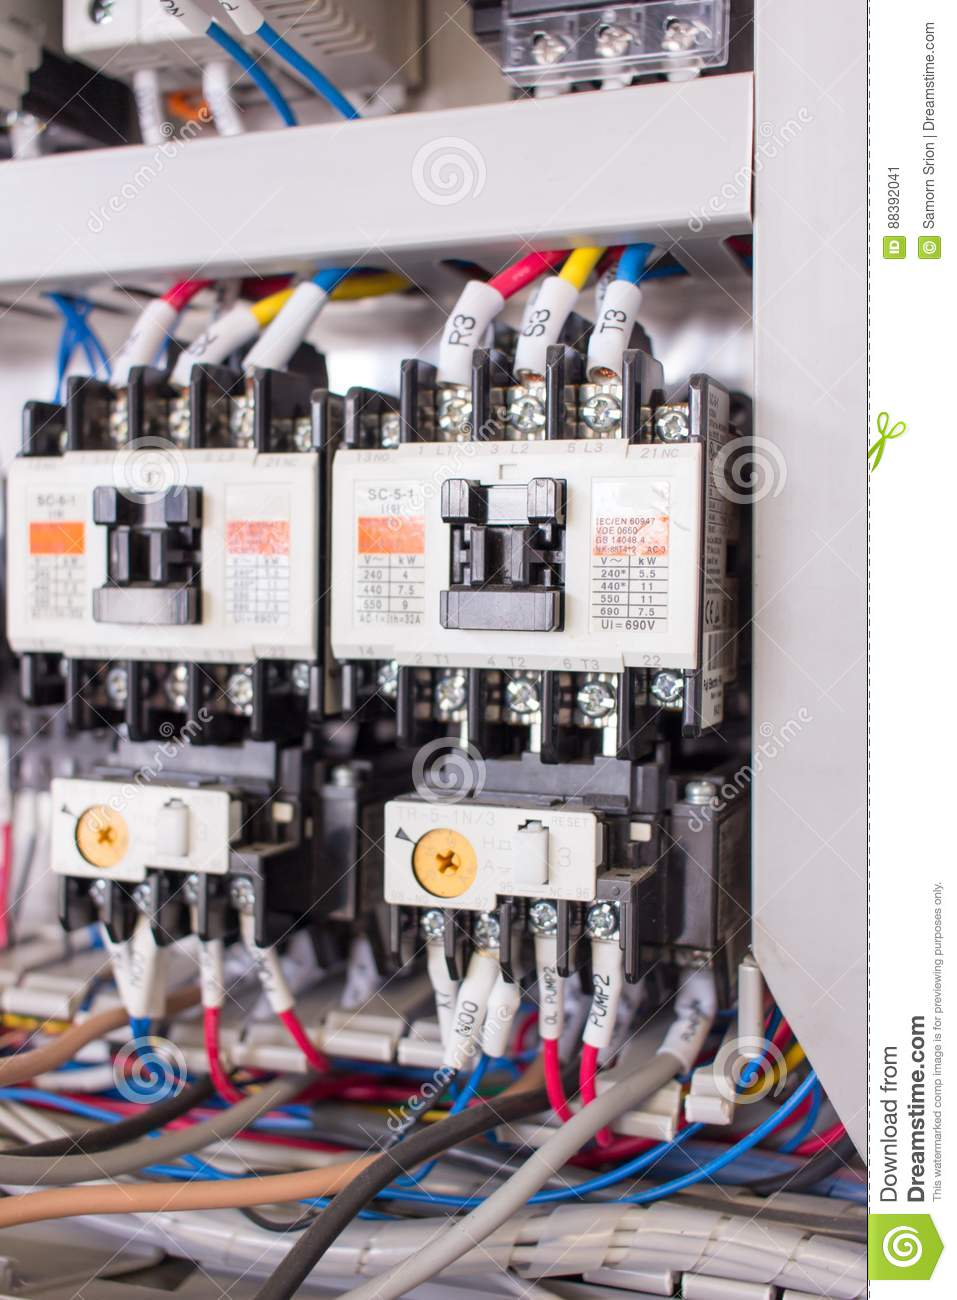 Wiring Management In Control Panel Stock Image Image Of Activities Electrical 88392041